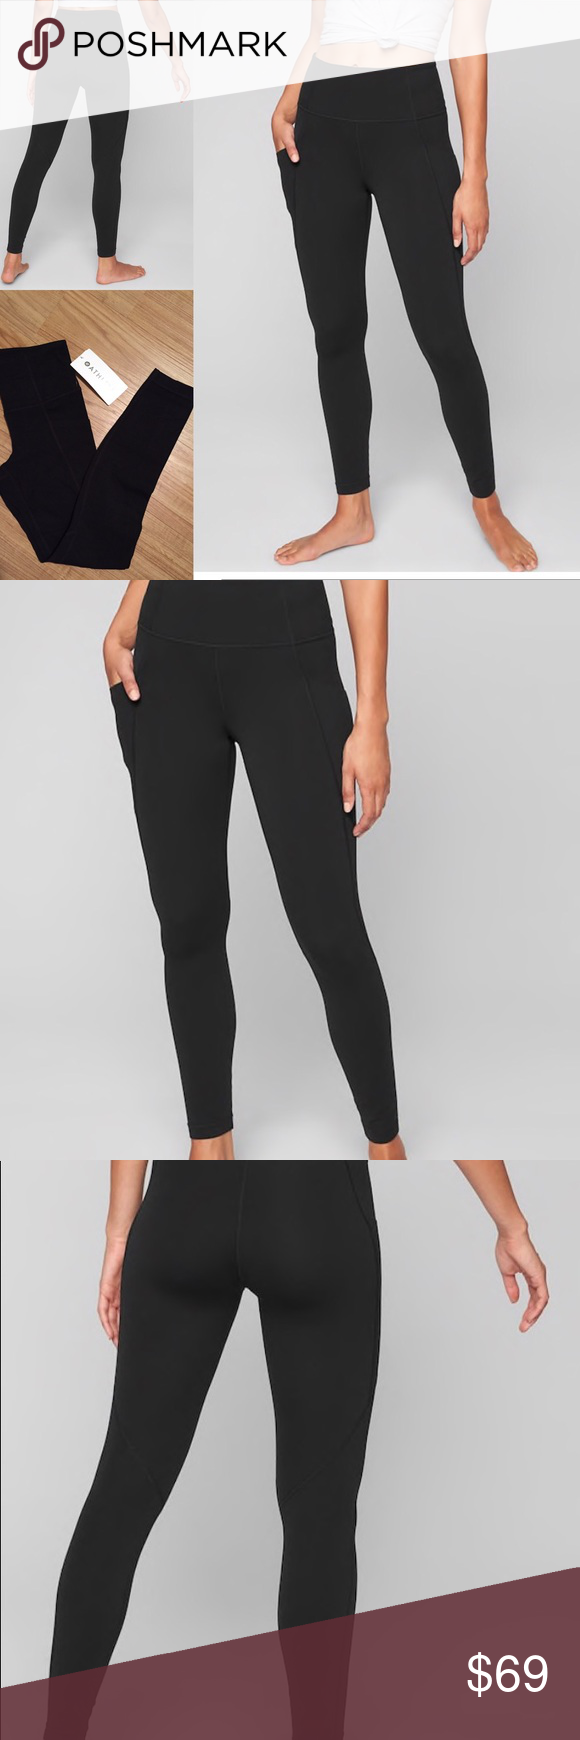 97bbe51c9a5cb Athleta Stash Pocket Salutation Tights PowerVita fabric Wicking, breathable  Side Stash Pockets Fitted, High Rise, Tight leg Fits next to skin, ...